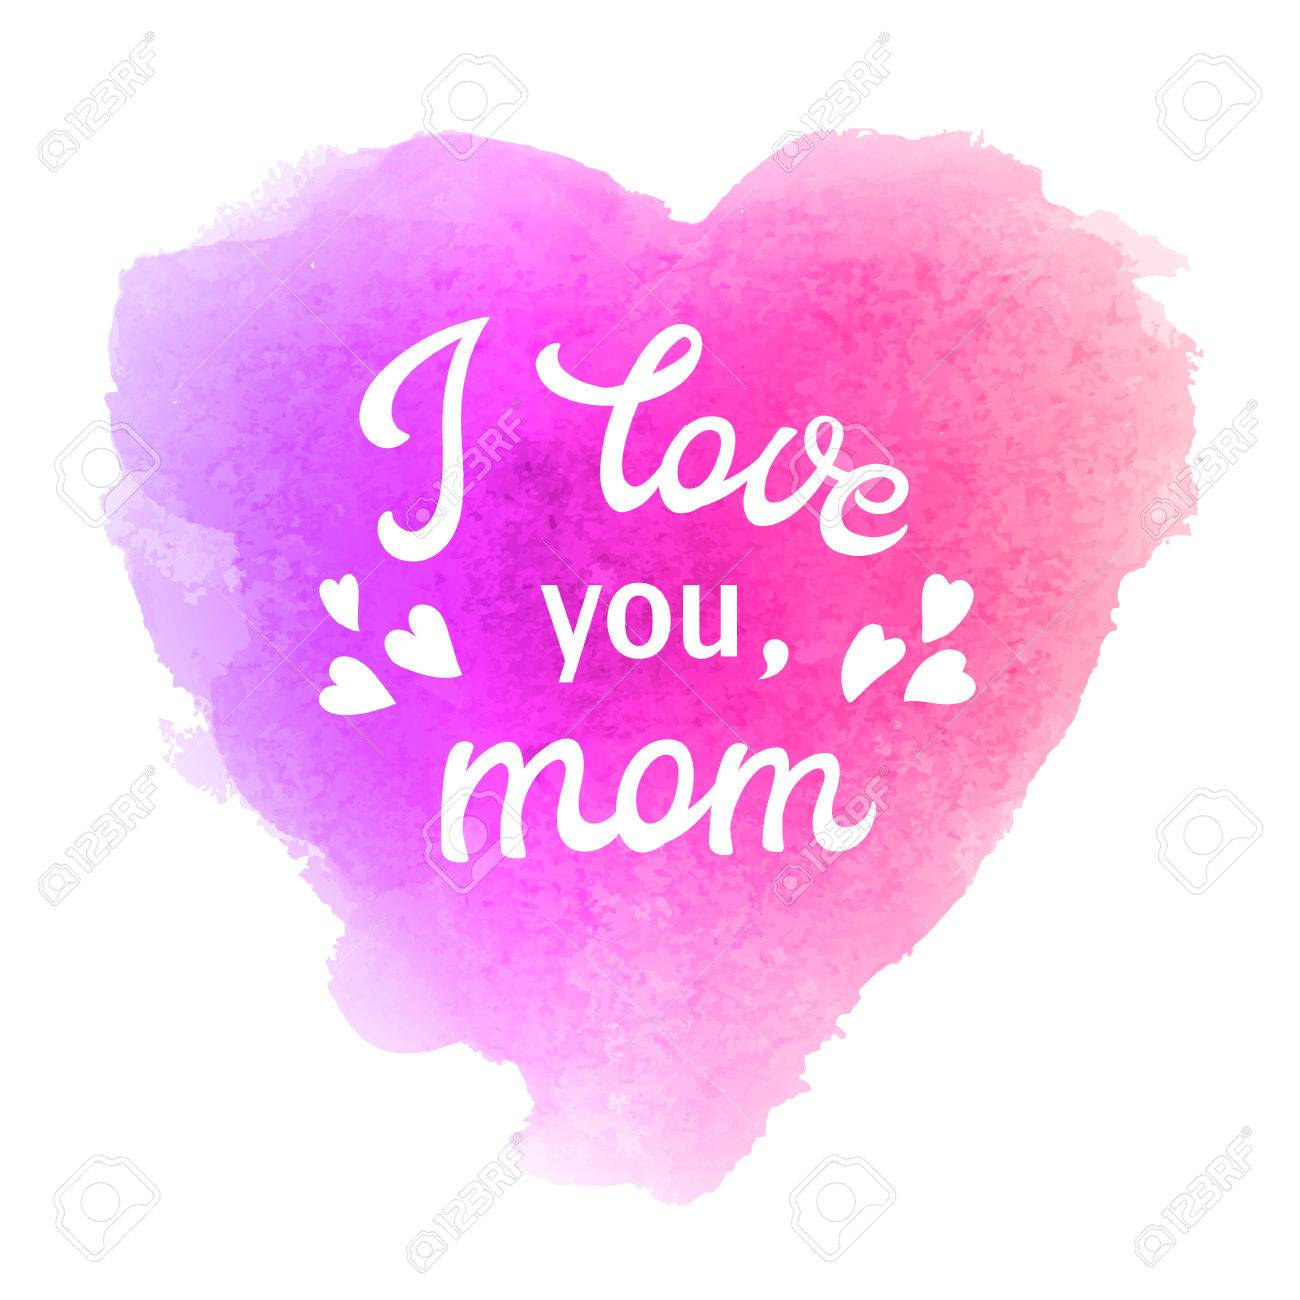 I Love You Mom Greeting Card With Heart And Hand Lettering Text Royalty Free Cliparts Vectors And Stock Illustration Image 77398241